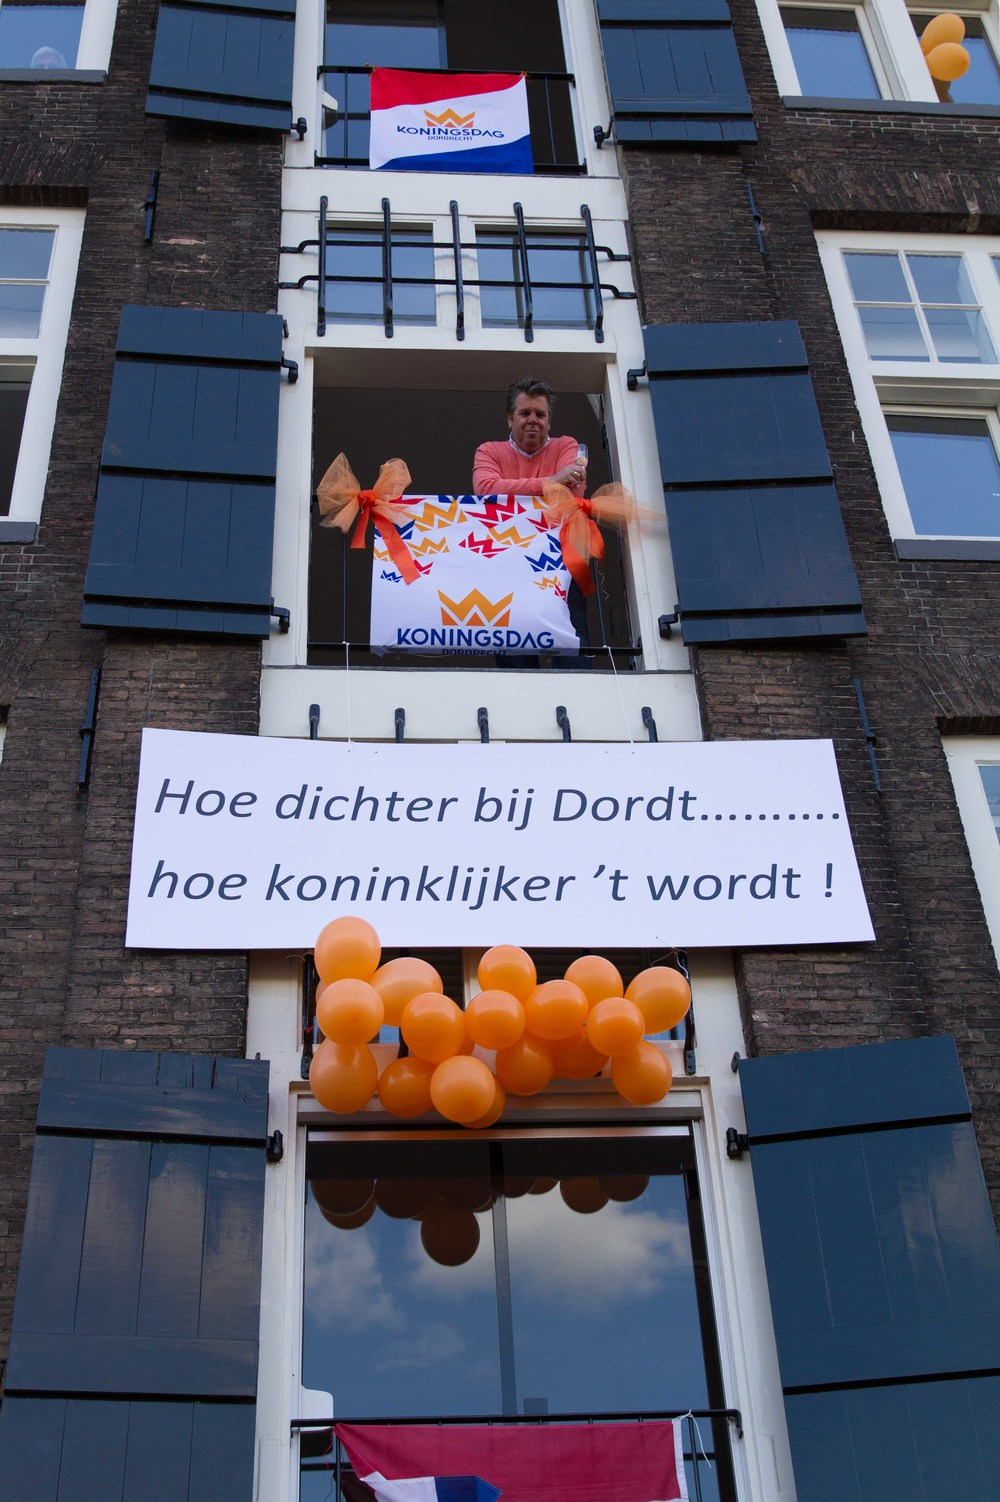 Great example of open window encounters from King's Day